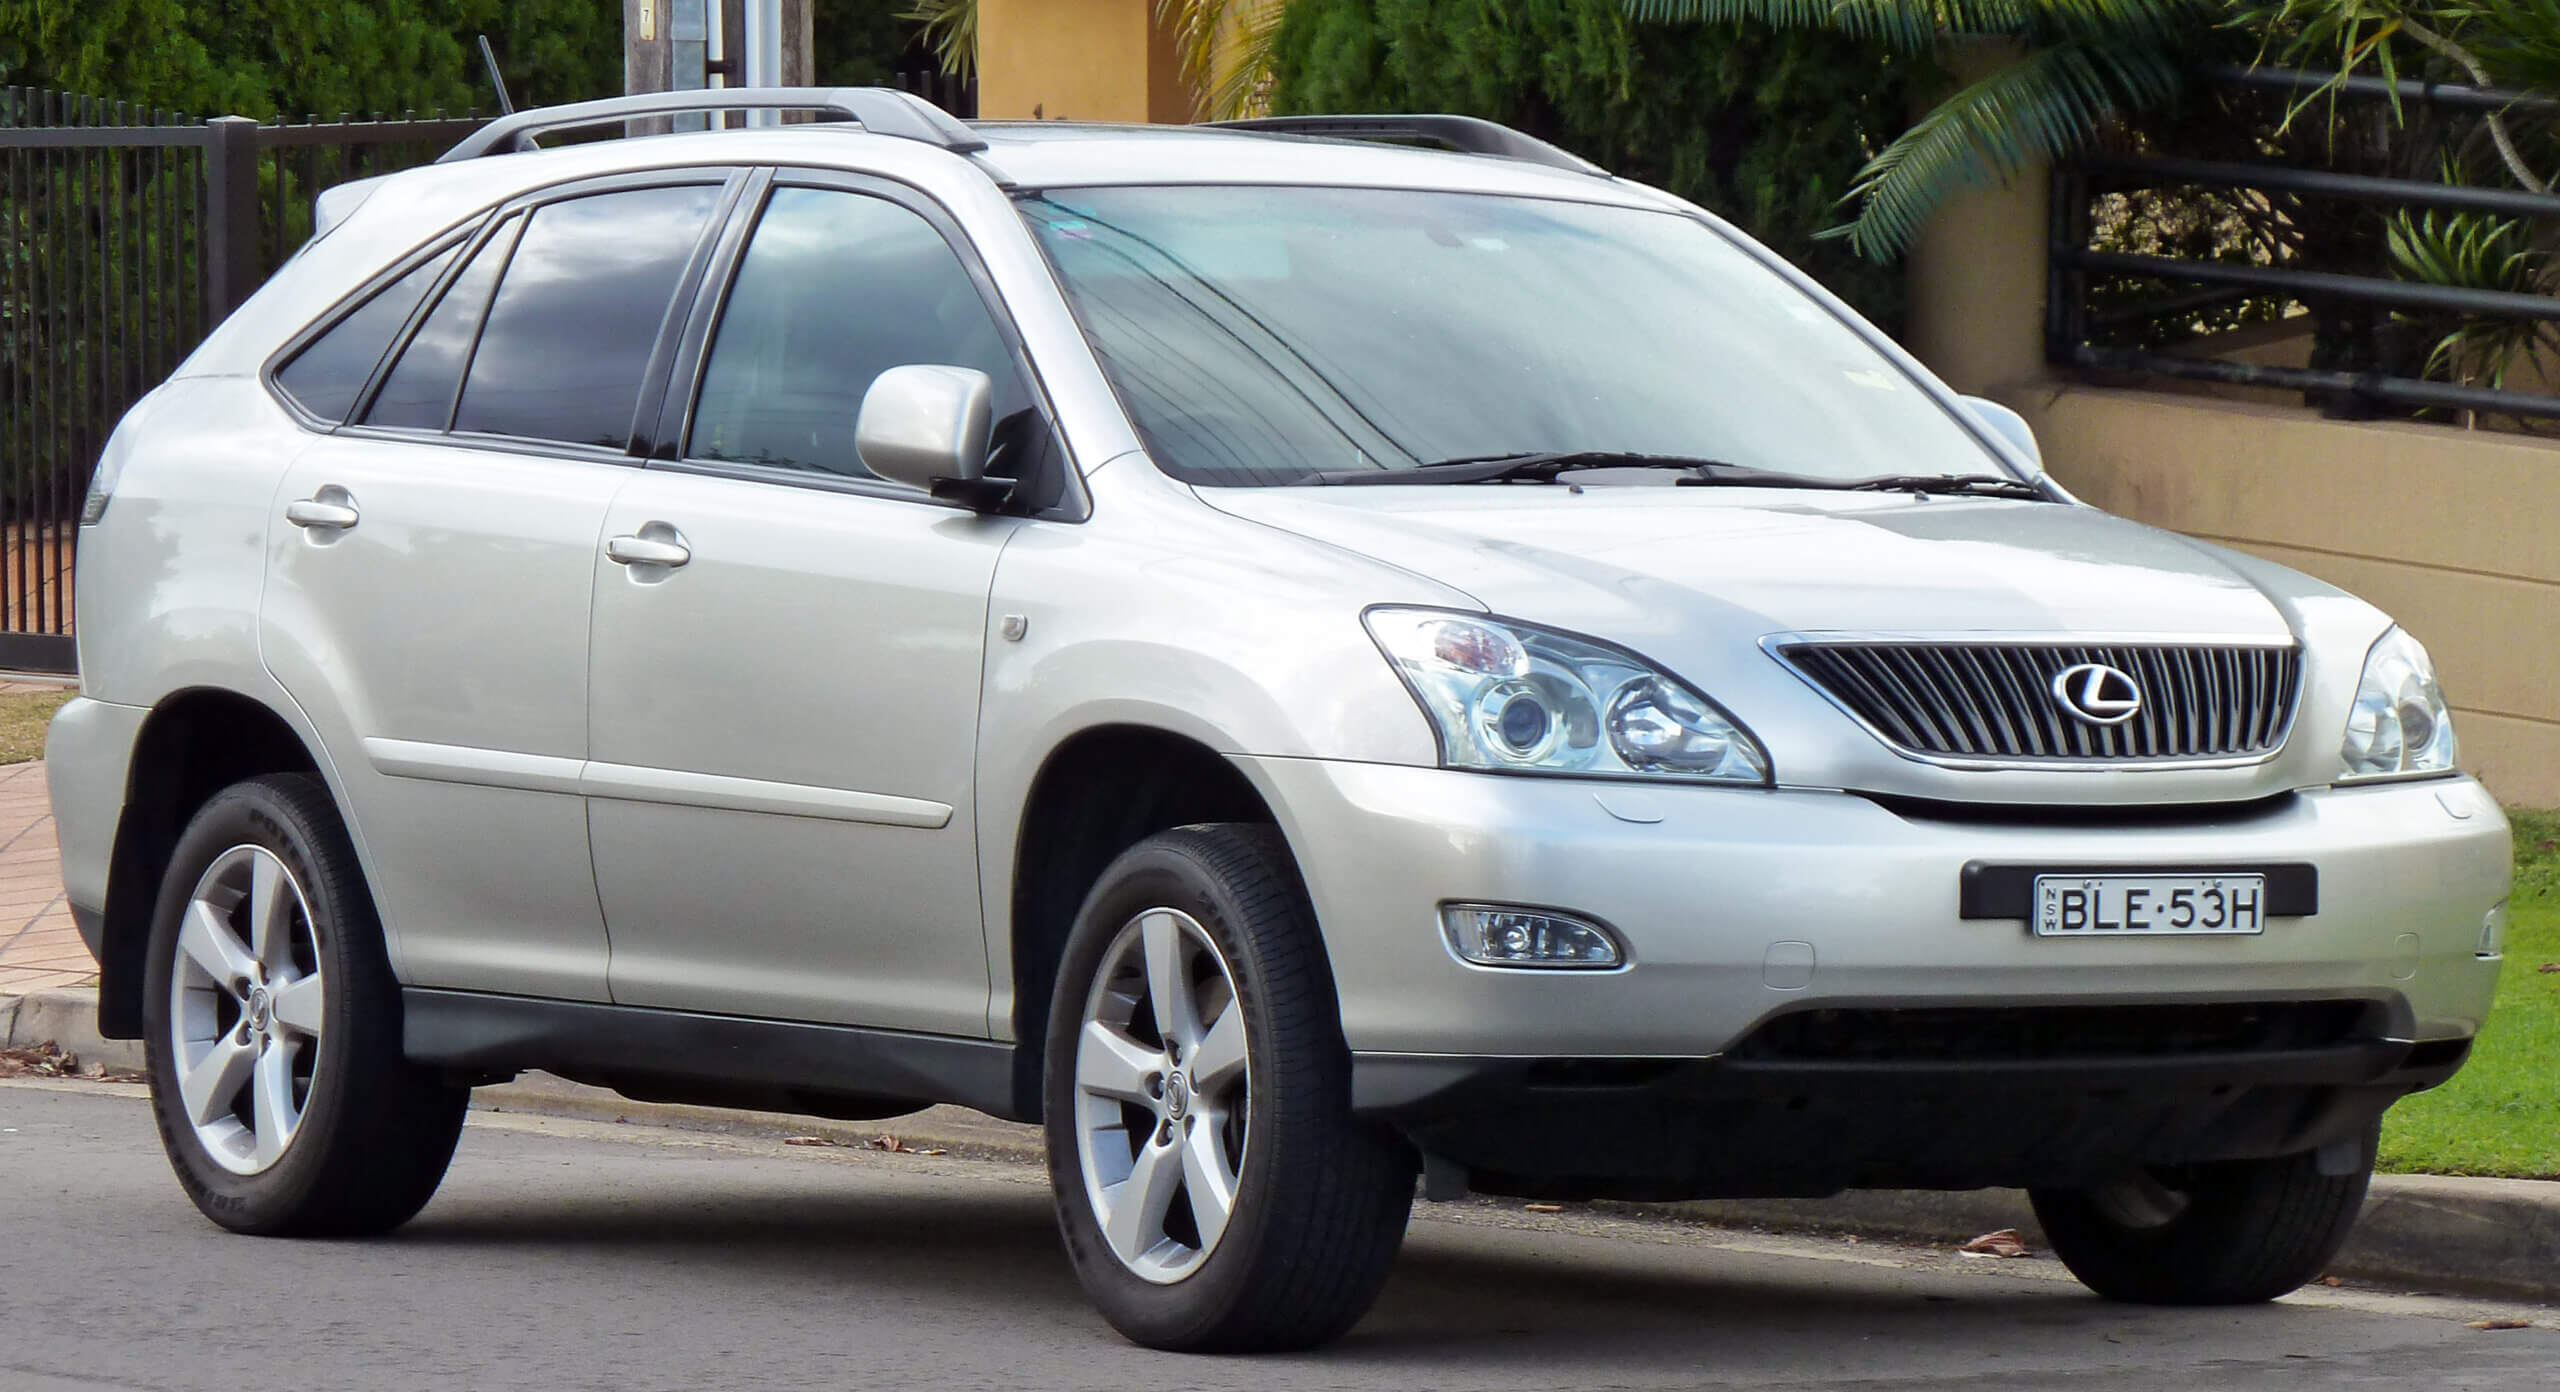 Lexus RX 330 price in Nigeria